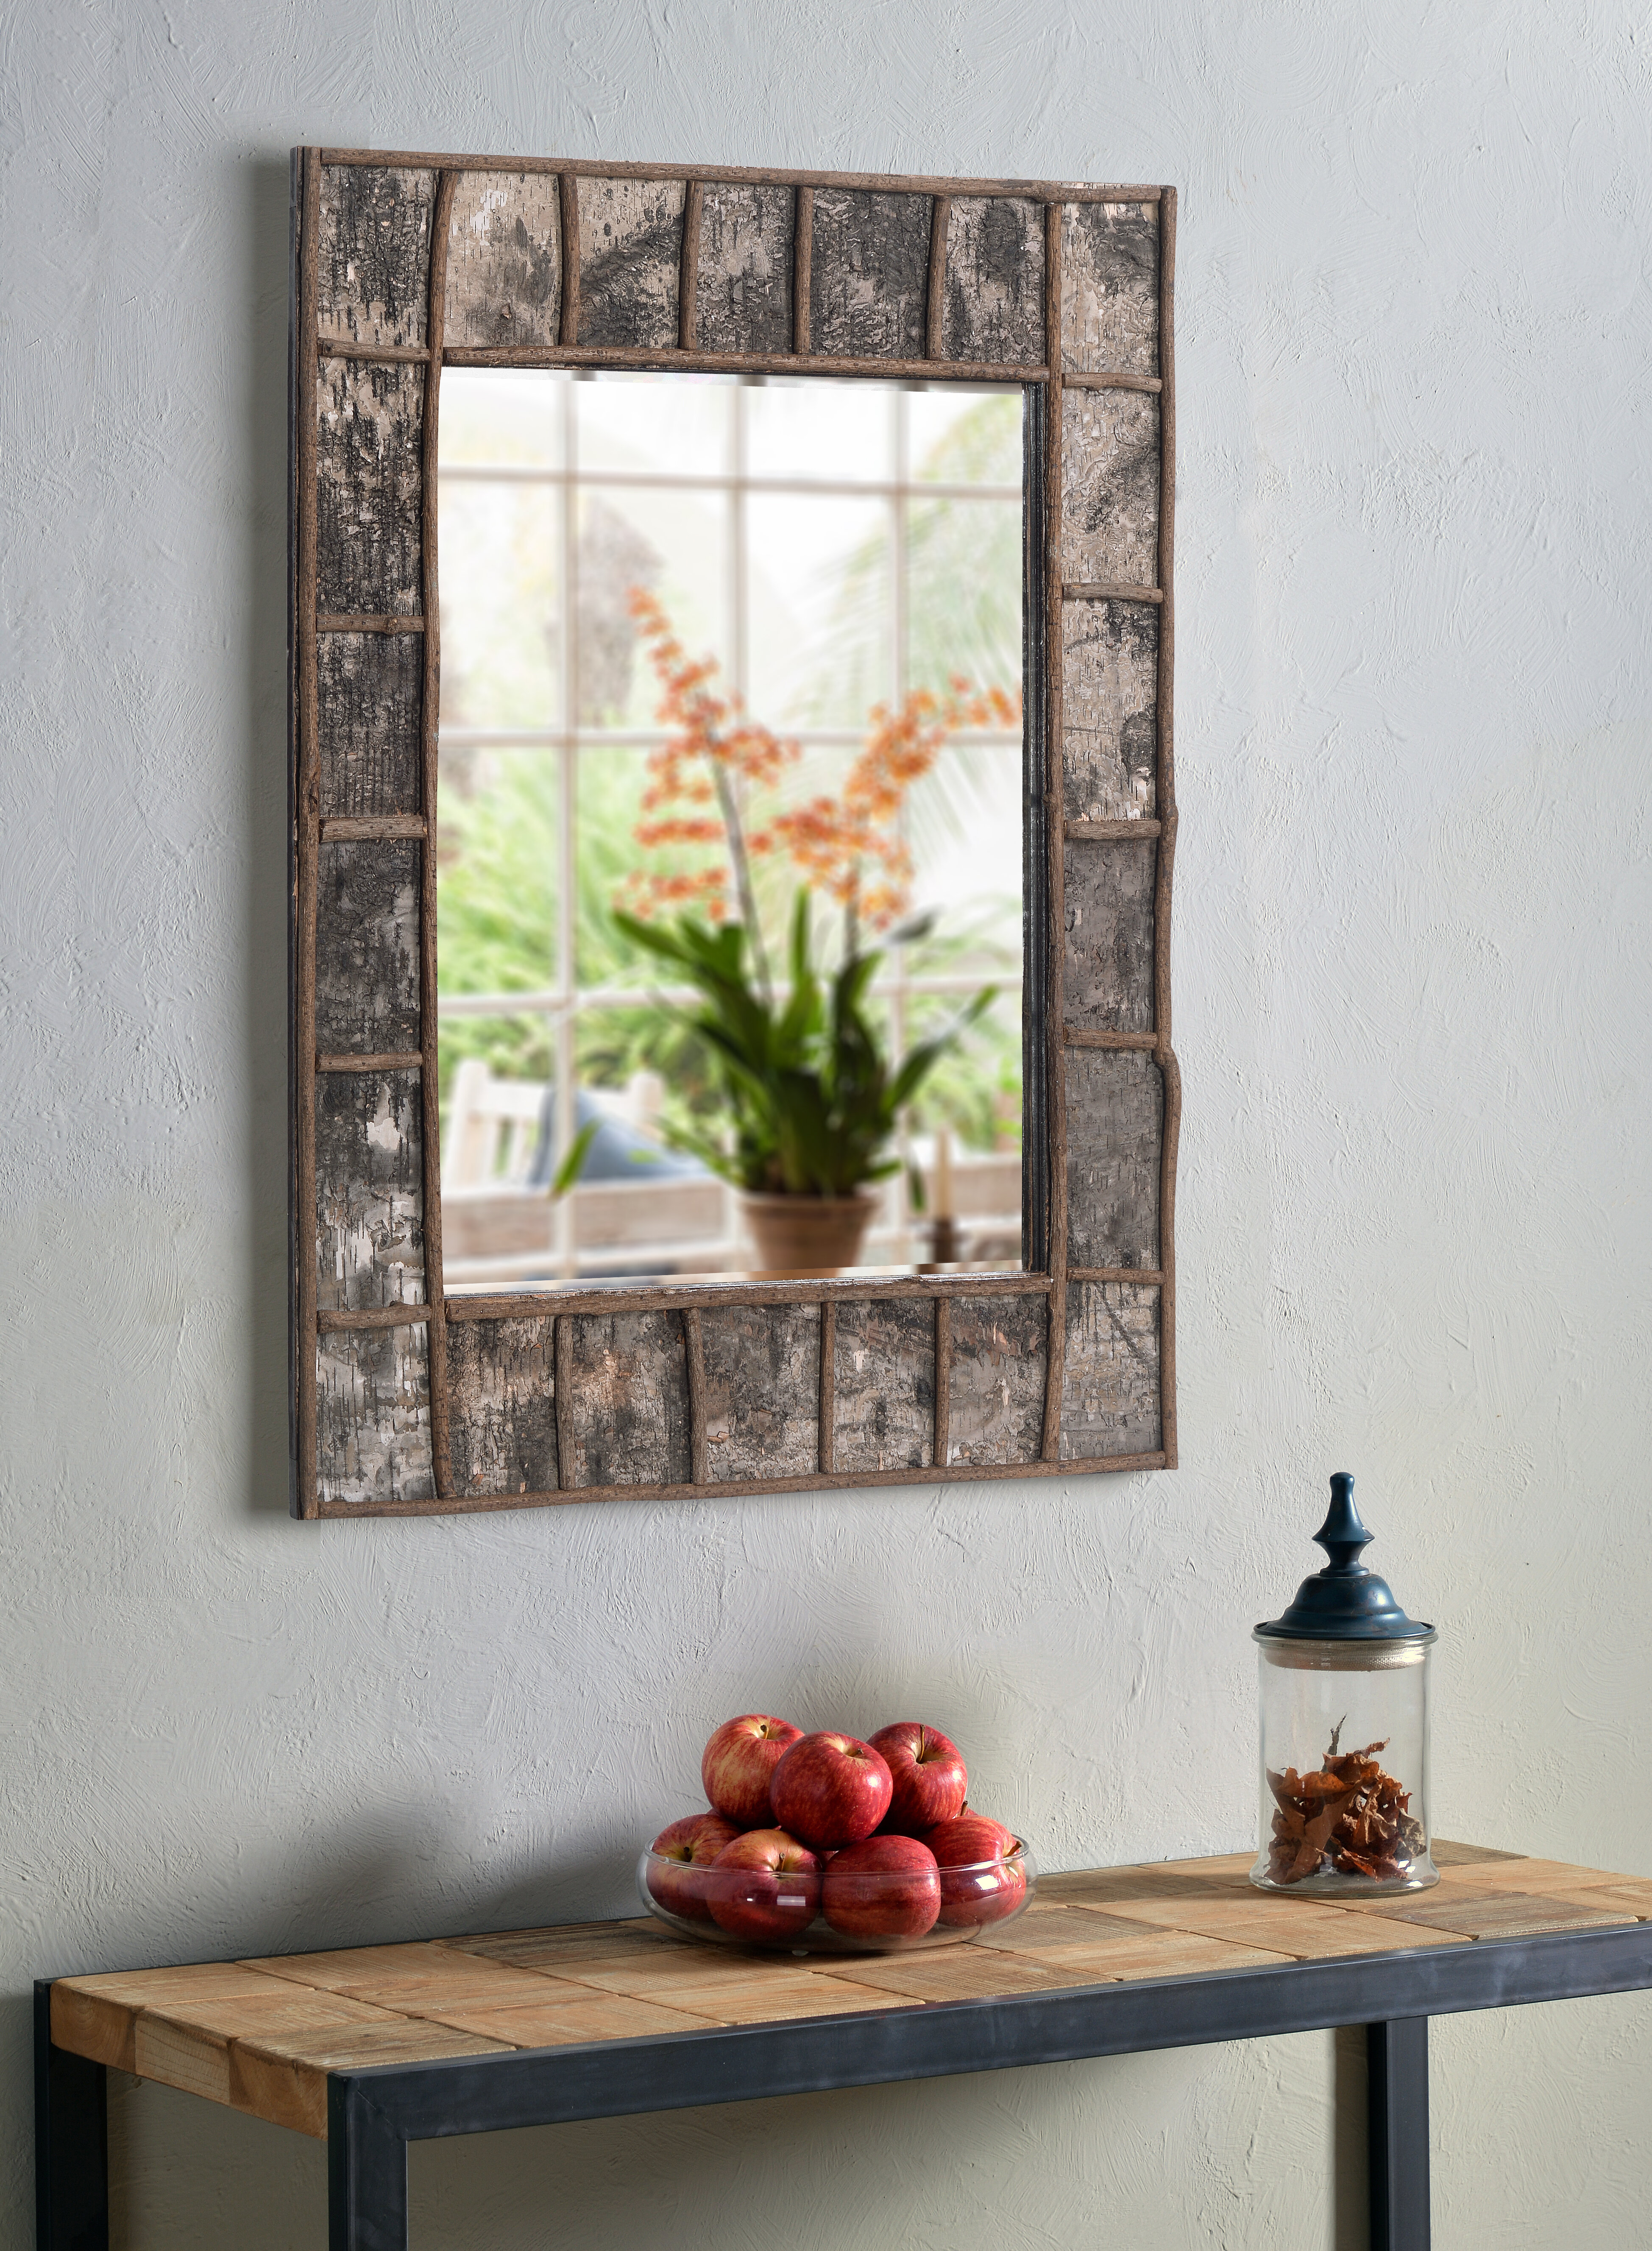 Wurth Birch Bark Traditional Beveled Accent Mirror Intended For Tifton Traditional Beveled Accent Mirrors (Image 20 of 20)